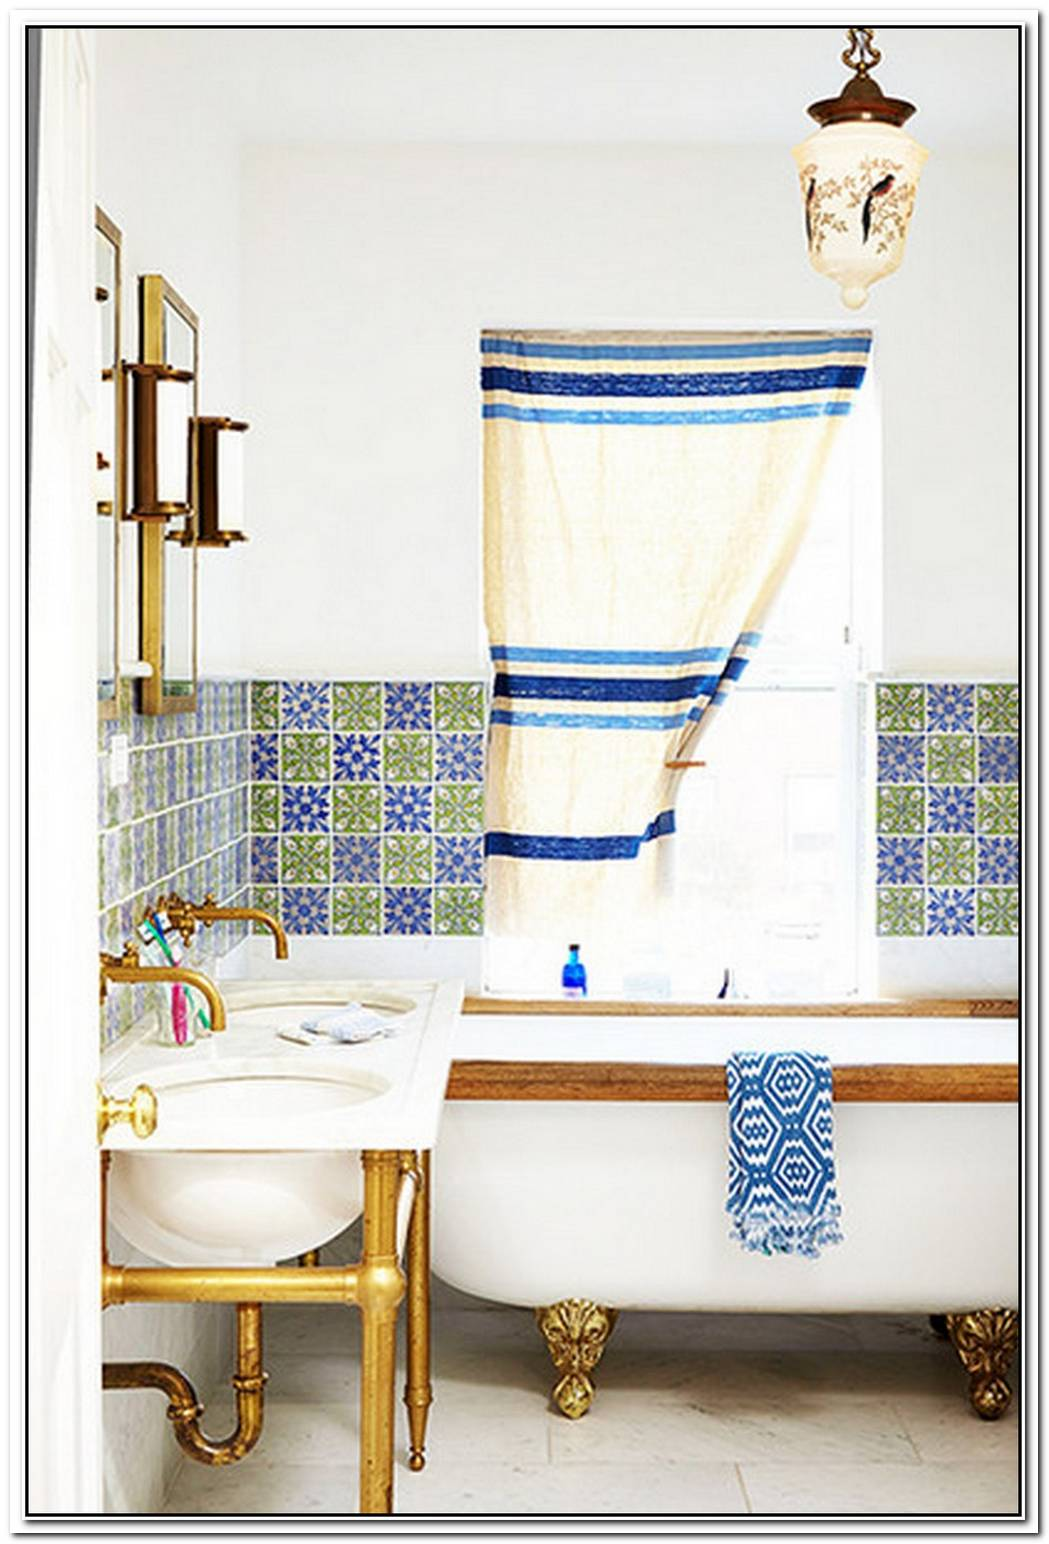 16 Reasons You Should Mix Tile Patterns